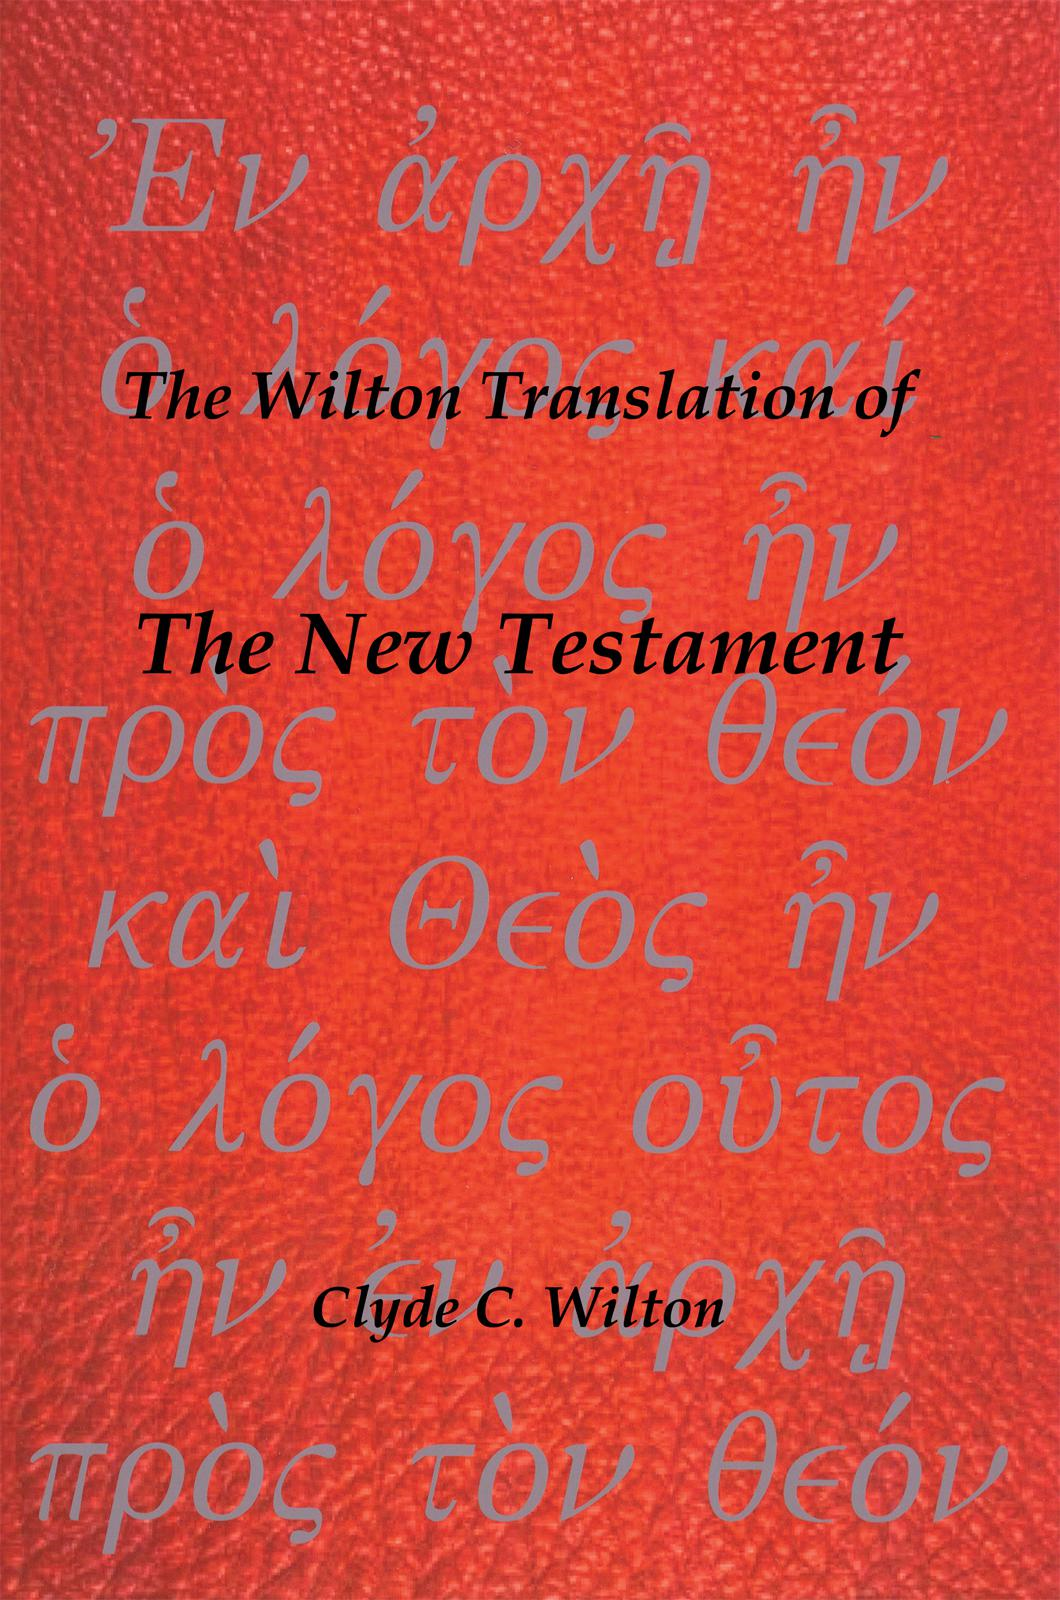 The Wilton Translation of the New Testament